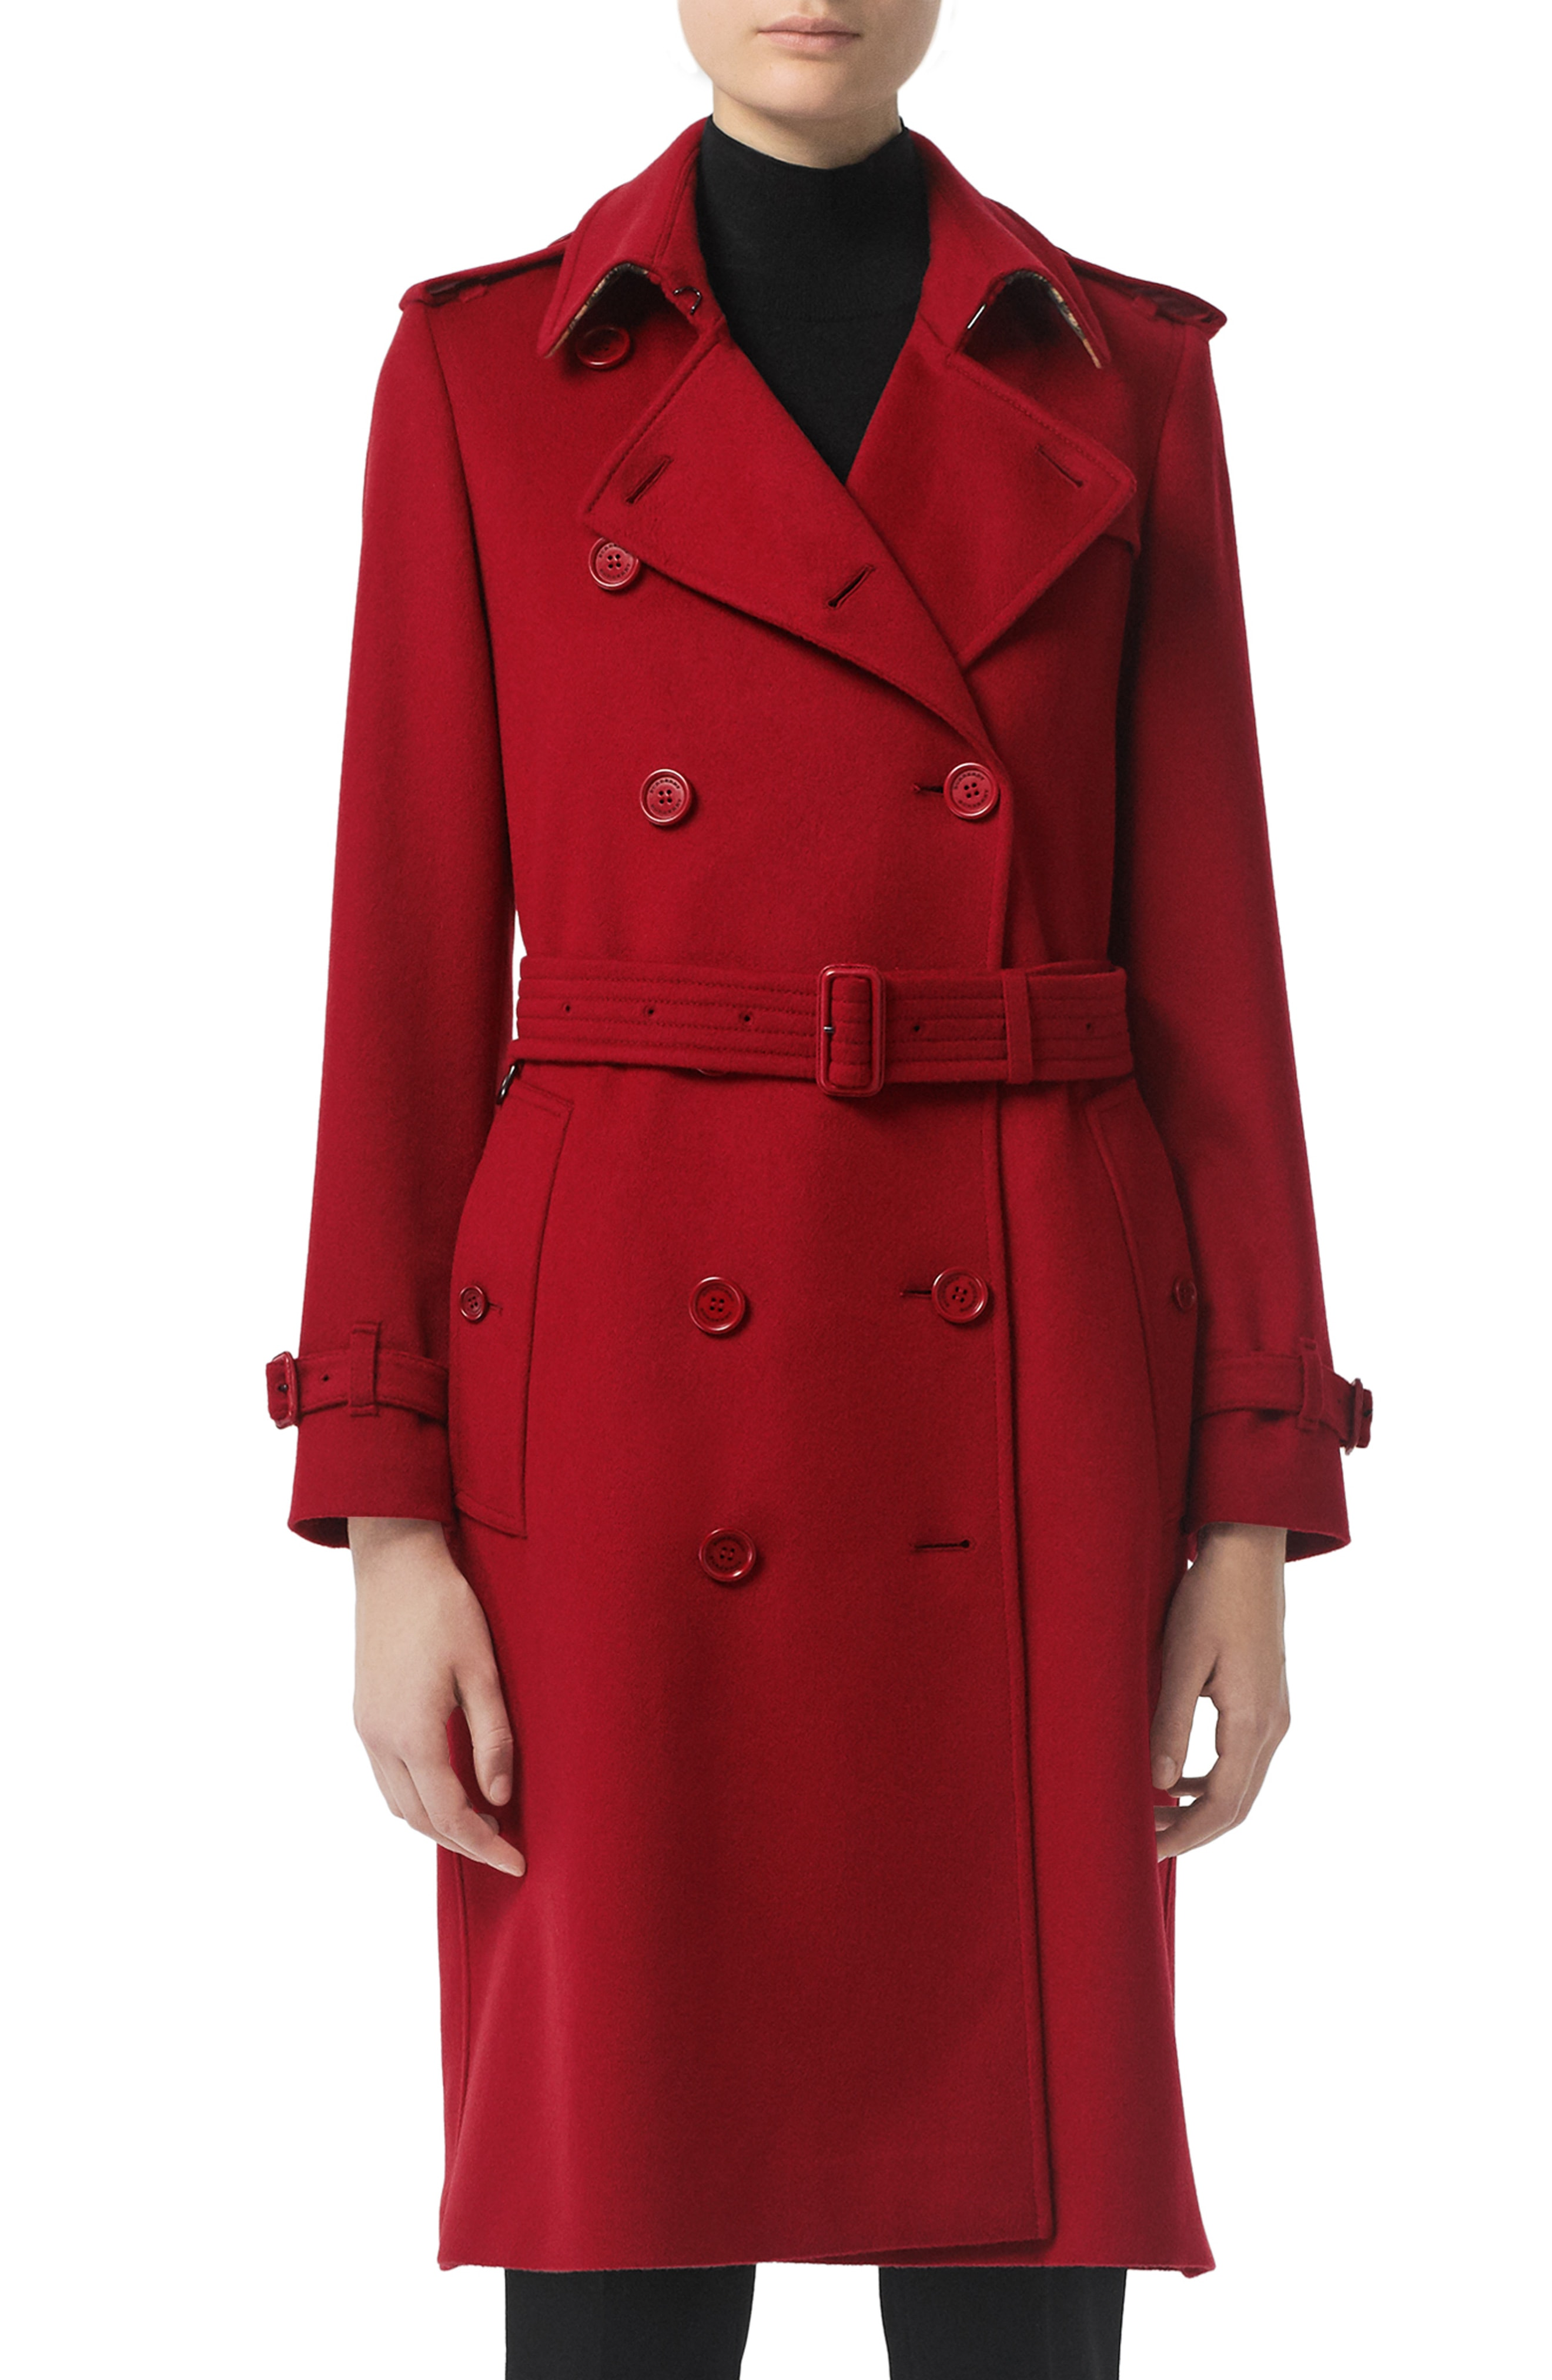 Enrich your wardrobe with the red trench coat